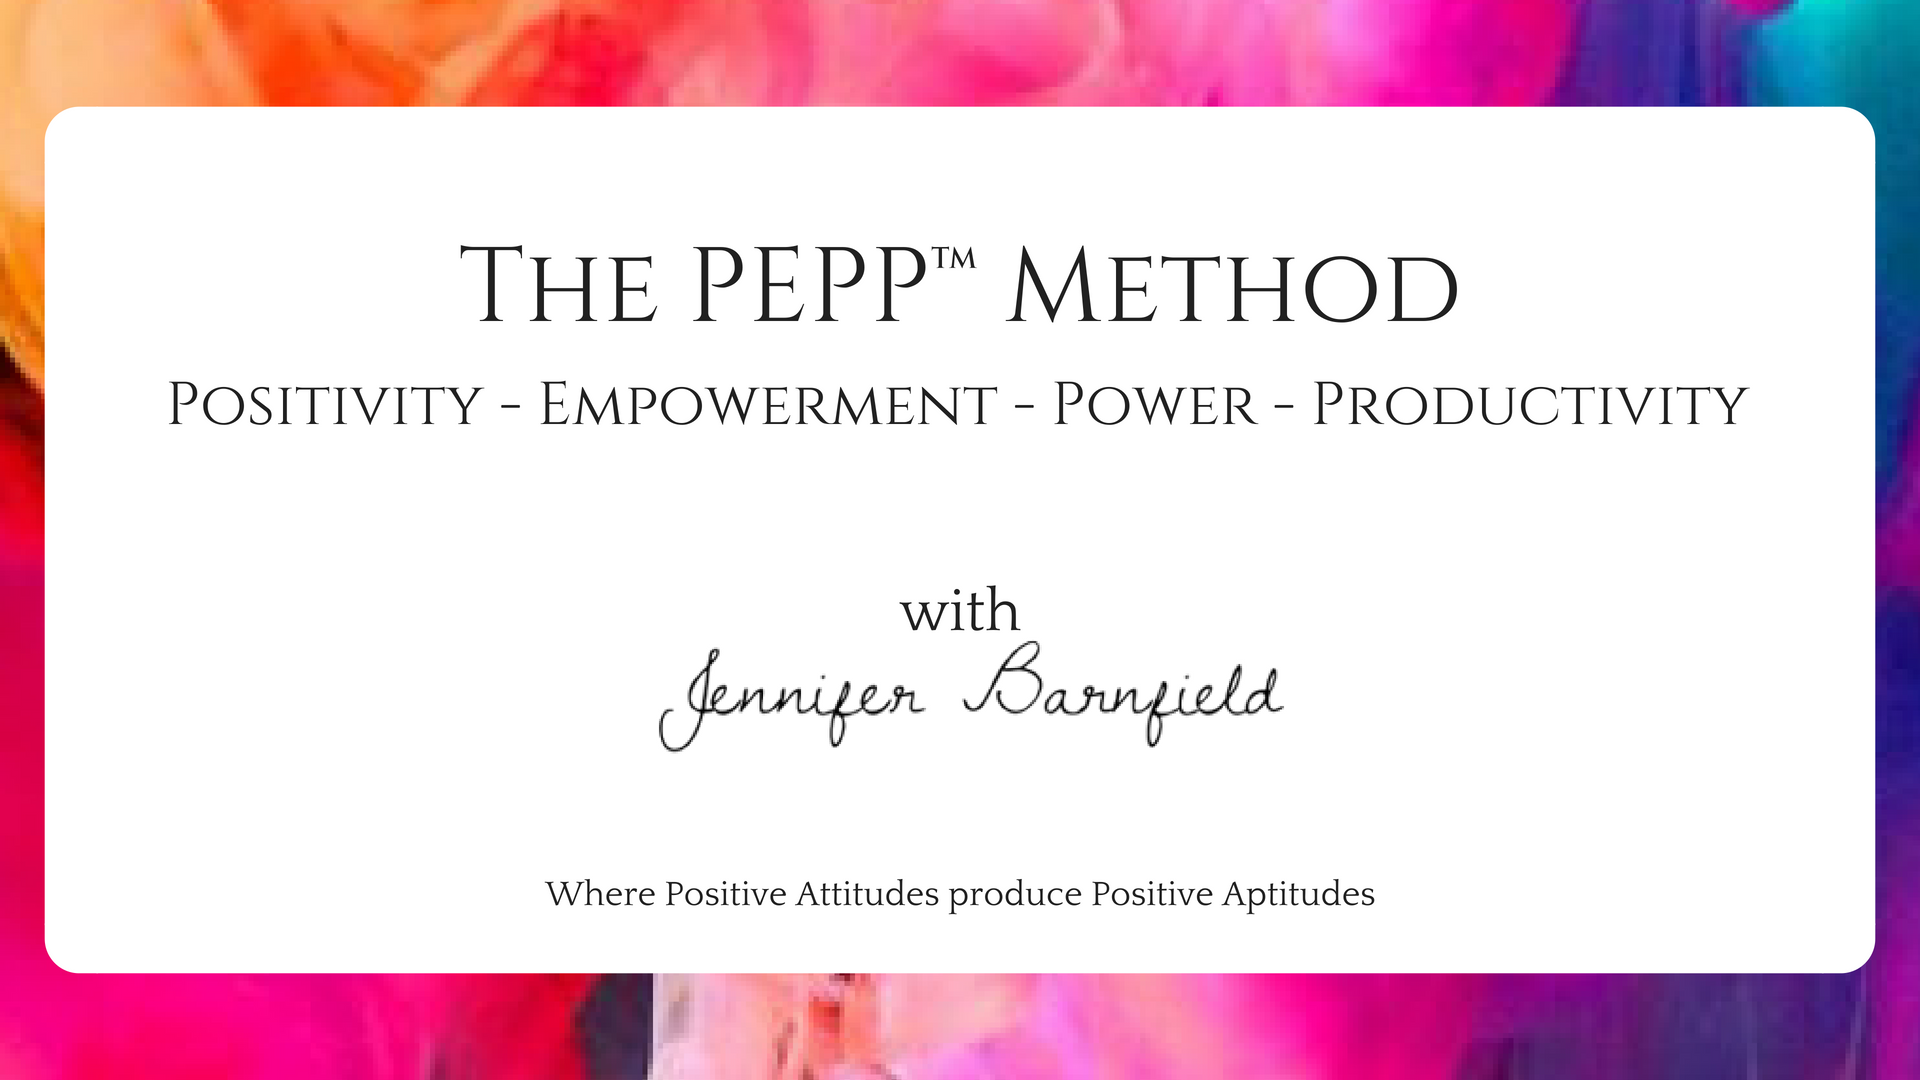 A Positive Attitude Produces A Positive Aptitude - The PEPP™ Method - The PEPP™ Method